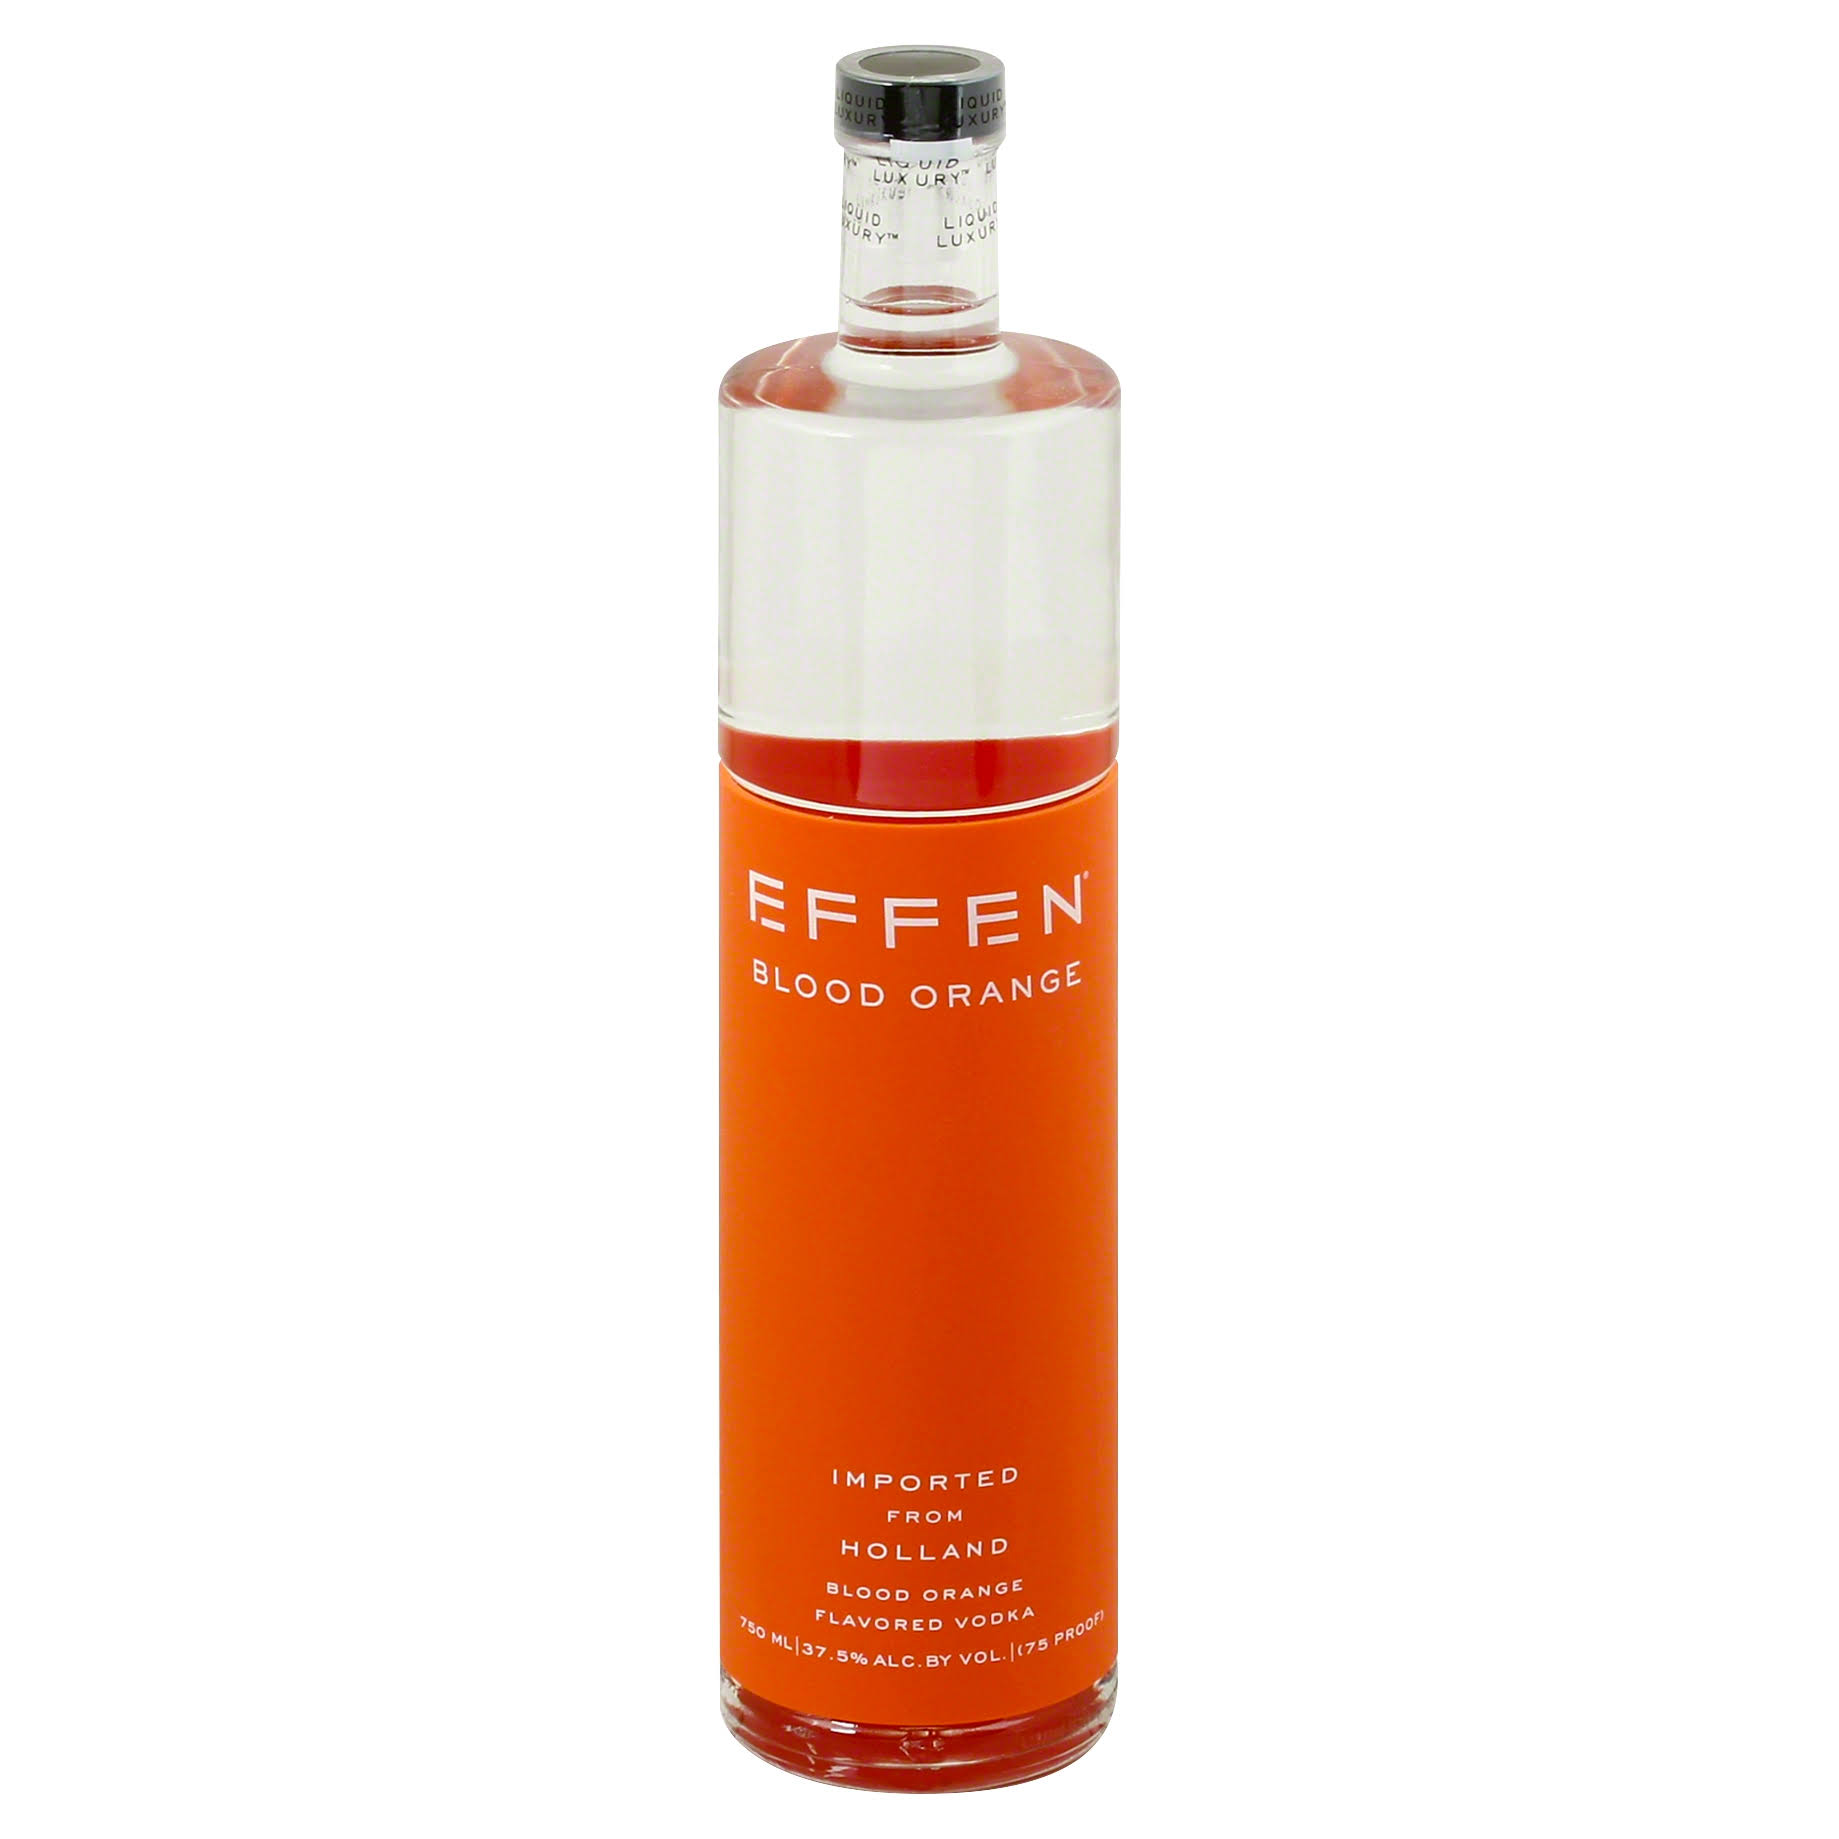 Effen Dutch Vodka - 750ml, Blood Orange